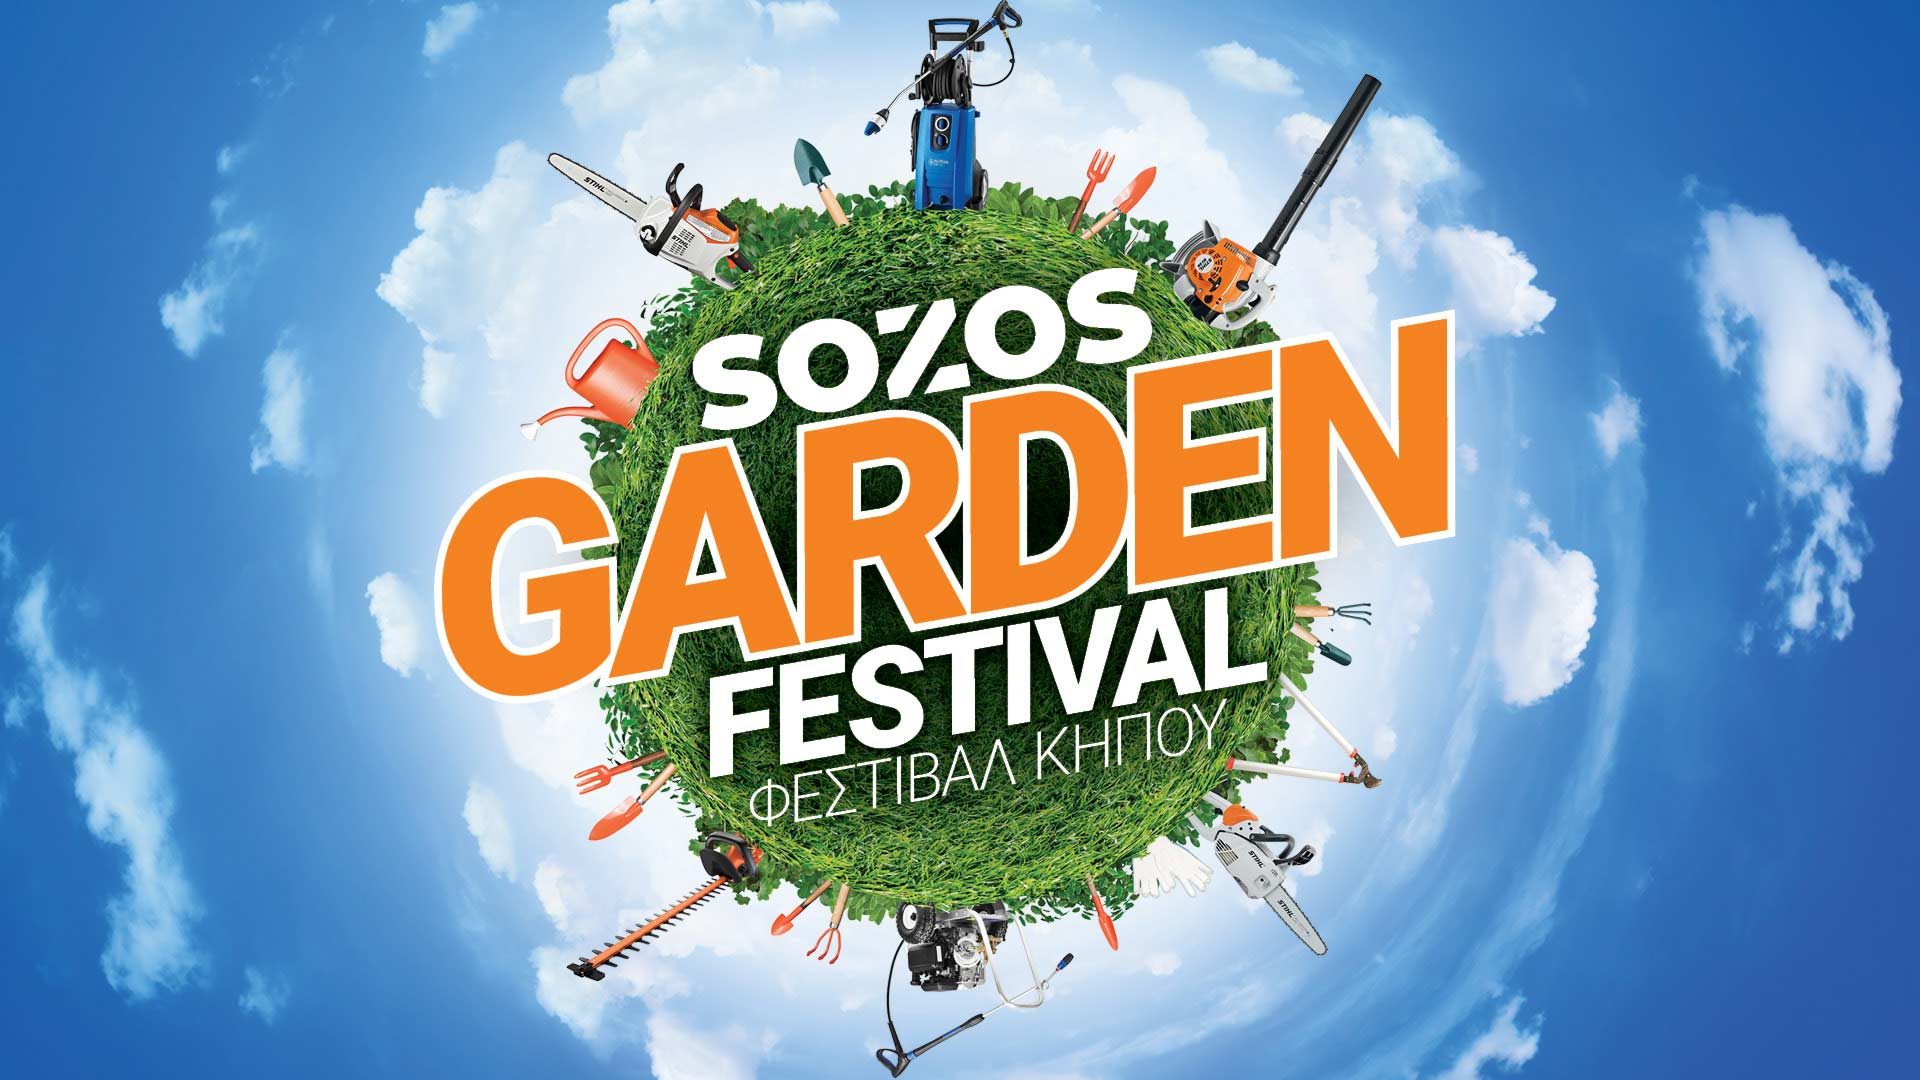 Garden Festival Paphos 5&6 April 2019 Presentation of the leading Nilfisk pressure washers, Tool demonstration of the new STIHL Product Range, STOCK CLEARANCE on selected tools & accessories, PRIZE DRAW for a cordless STIHL chainsaw!